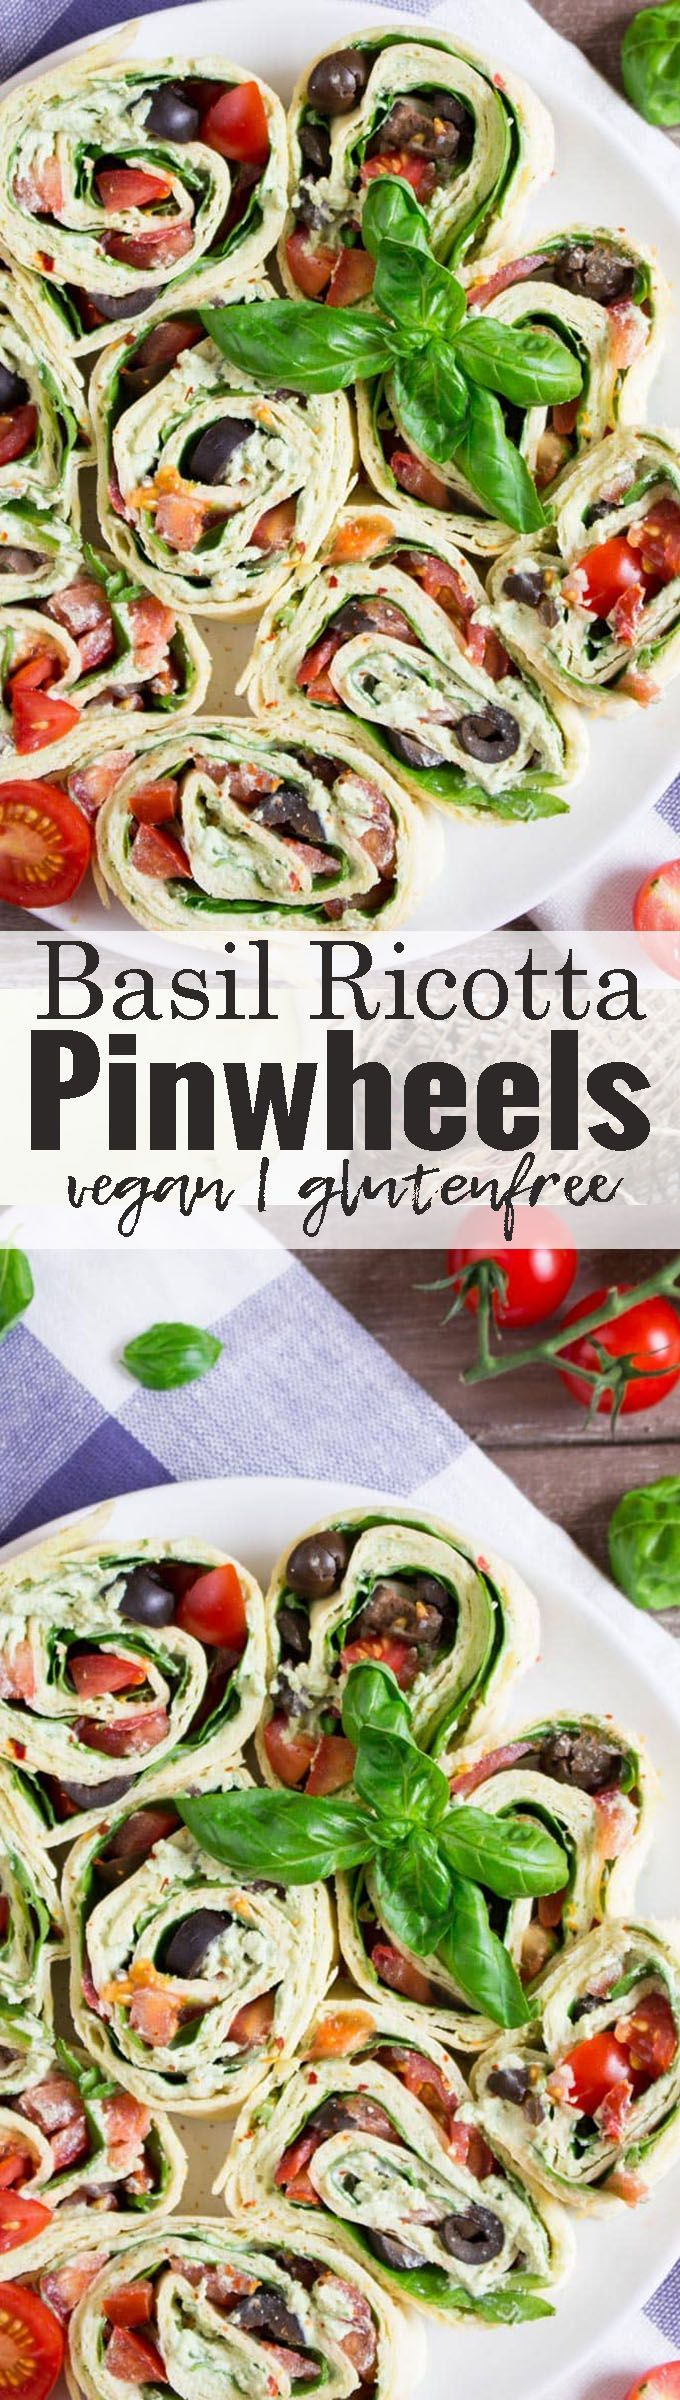 These basil ricotta pinhweels are perfect if you're looking for vegan party food! They're made with cashew ricotta, olives, and spinach. So delicious and super easy to make! Find more vegan recipes at veganheaven.org